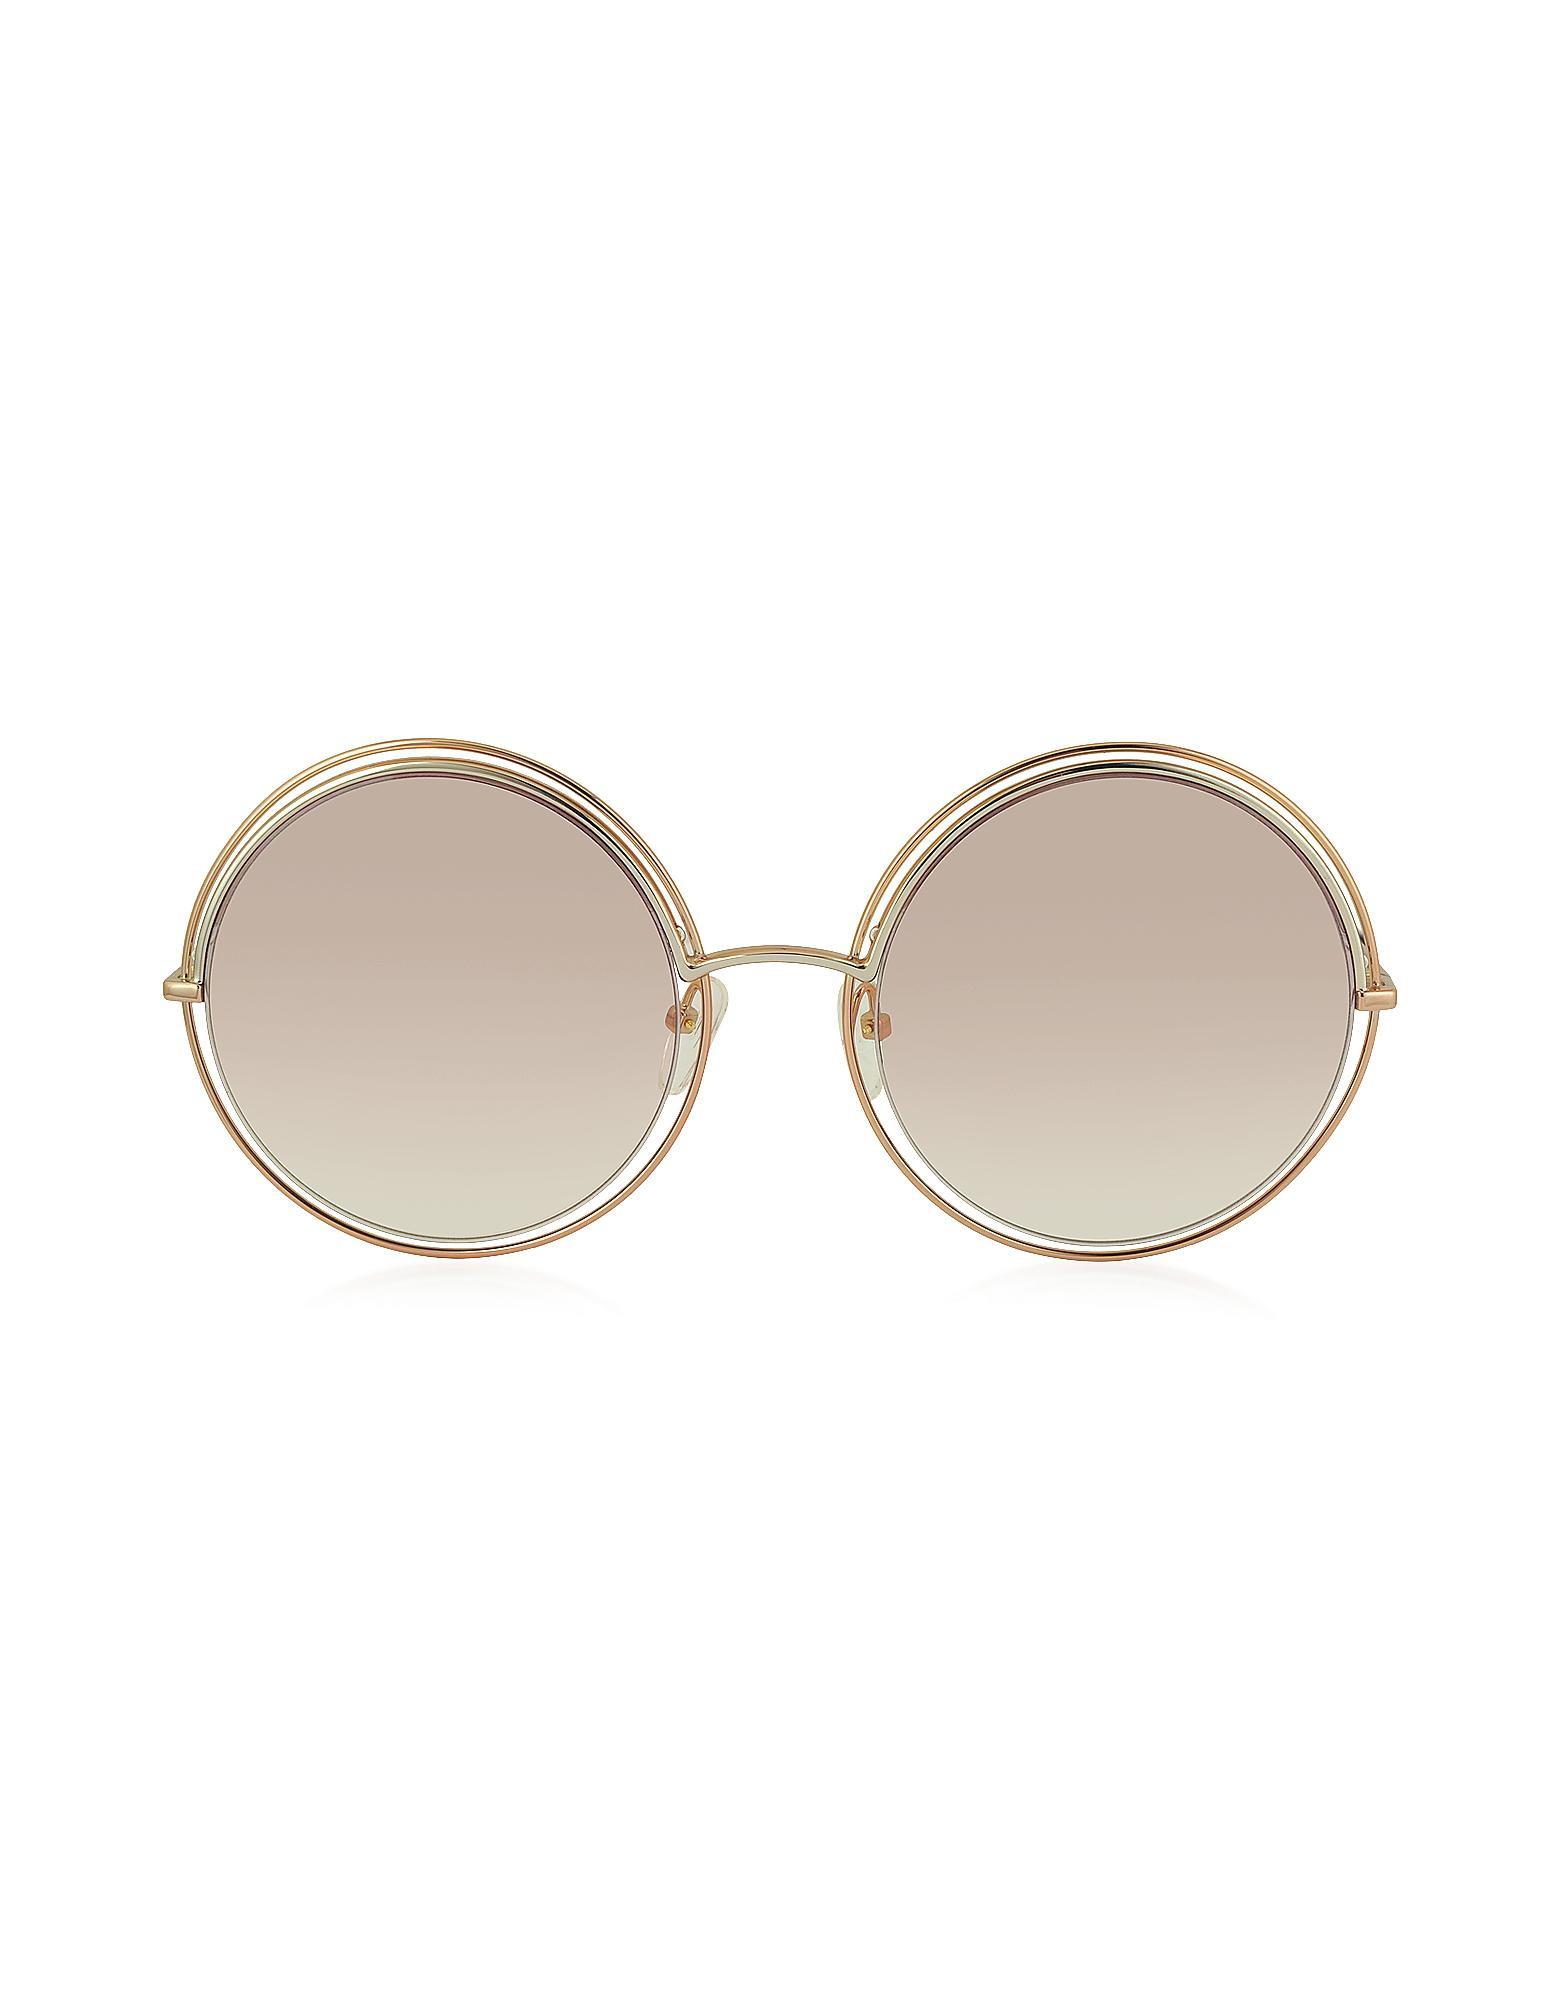 f6551fe666 Marc Jacobs Marc 11 s Metal   Acetate Round Oversized Women s ...